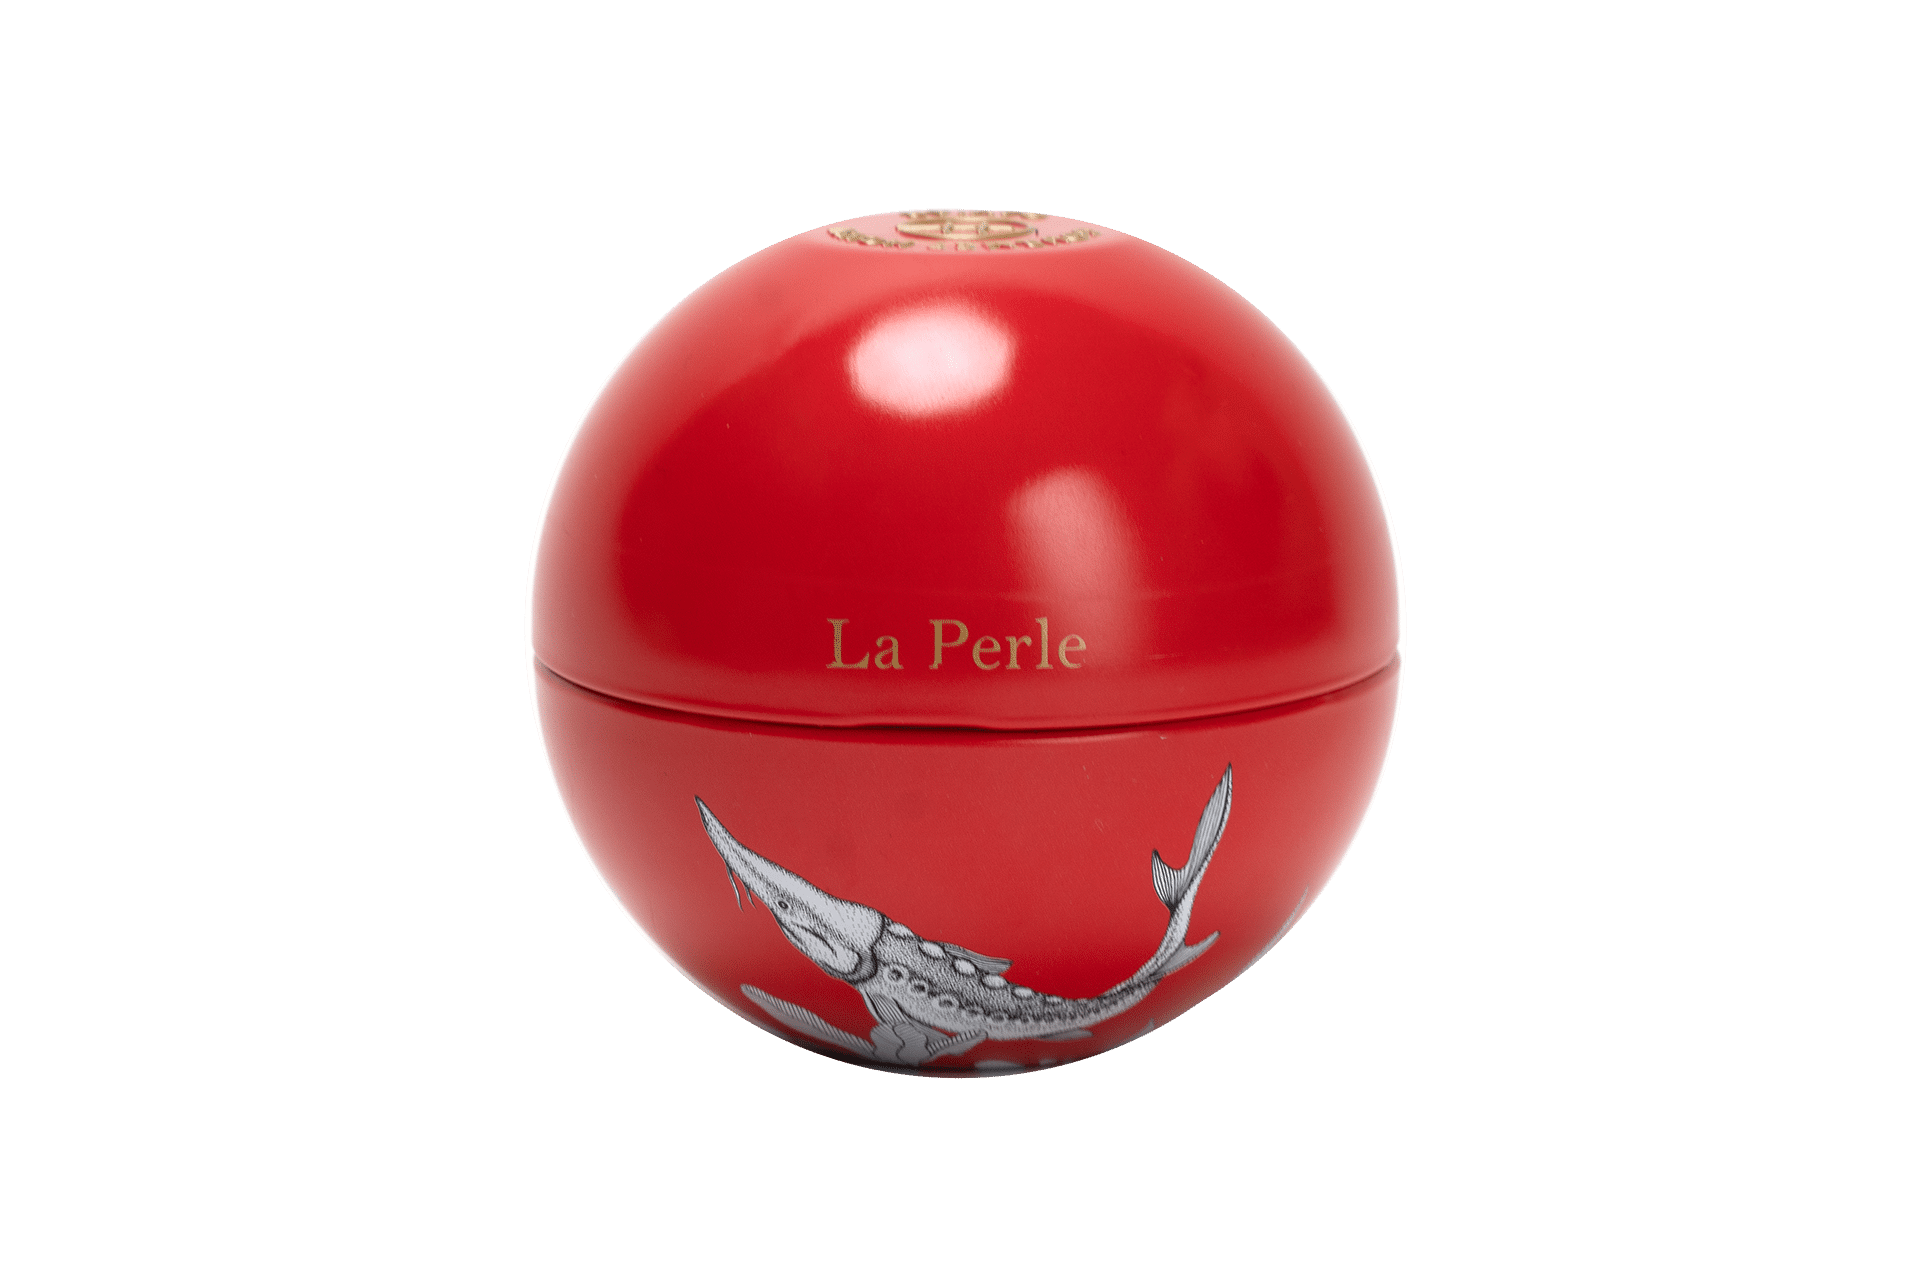 La Perle love red